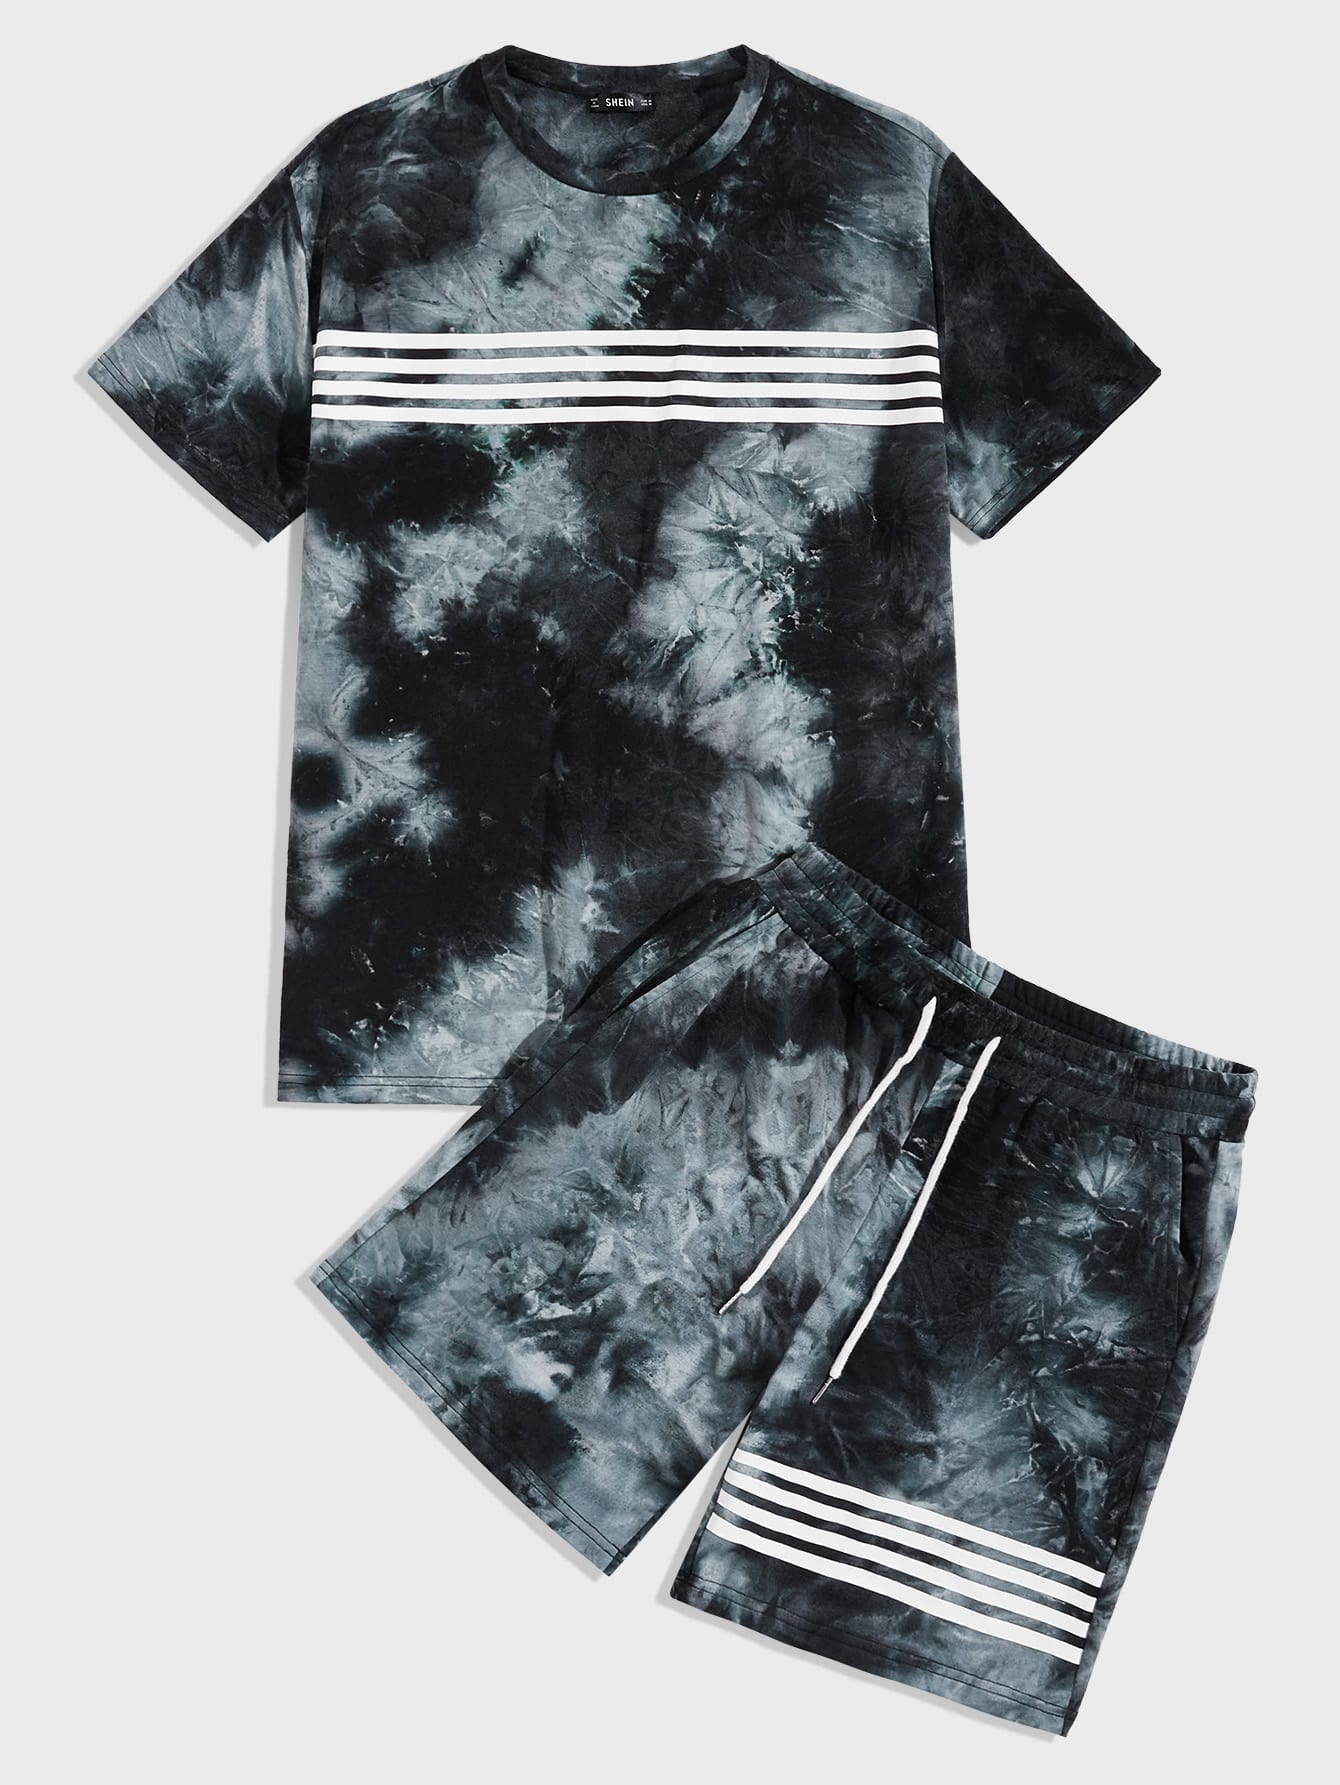 Romwe Girls 2 Piece Outfit Tie Dye Workout Short Sleeve Hoodie and Shorts Set